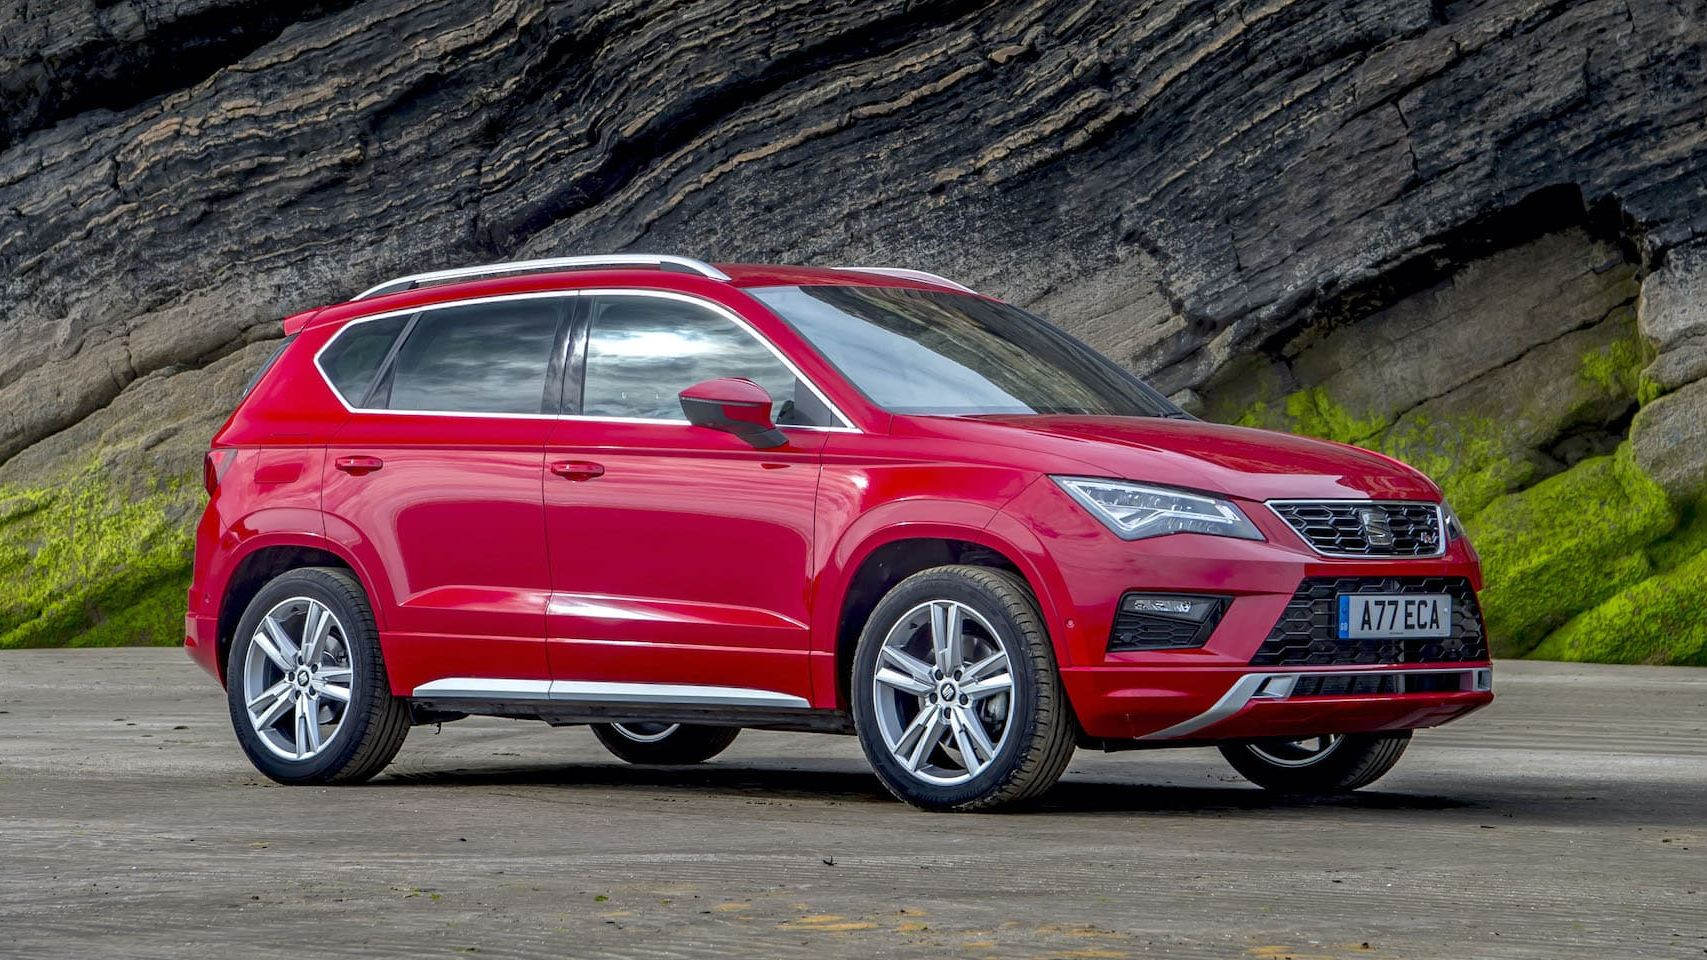 SEAT_Ateca_Red_